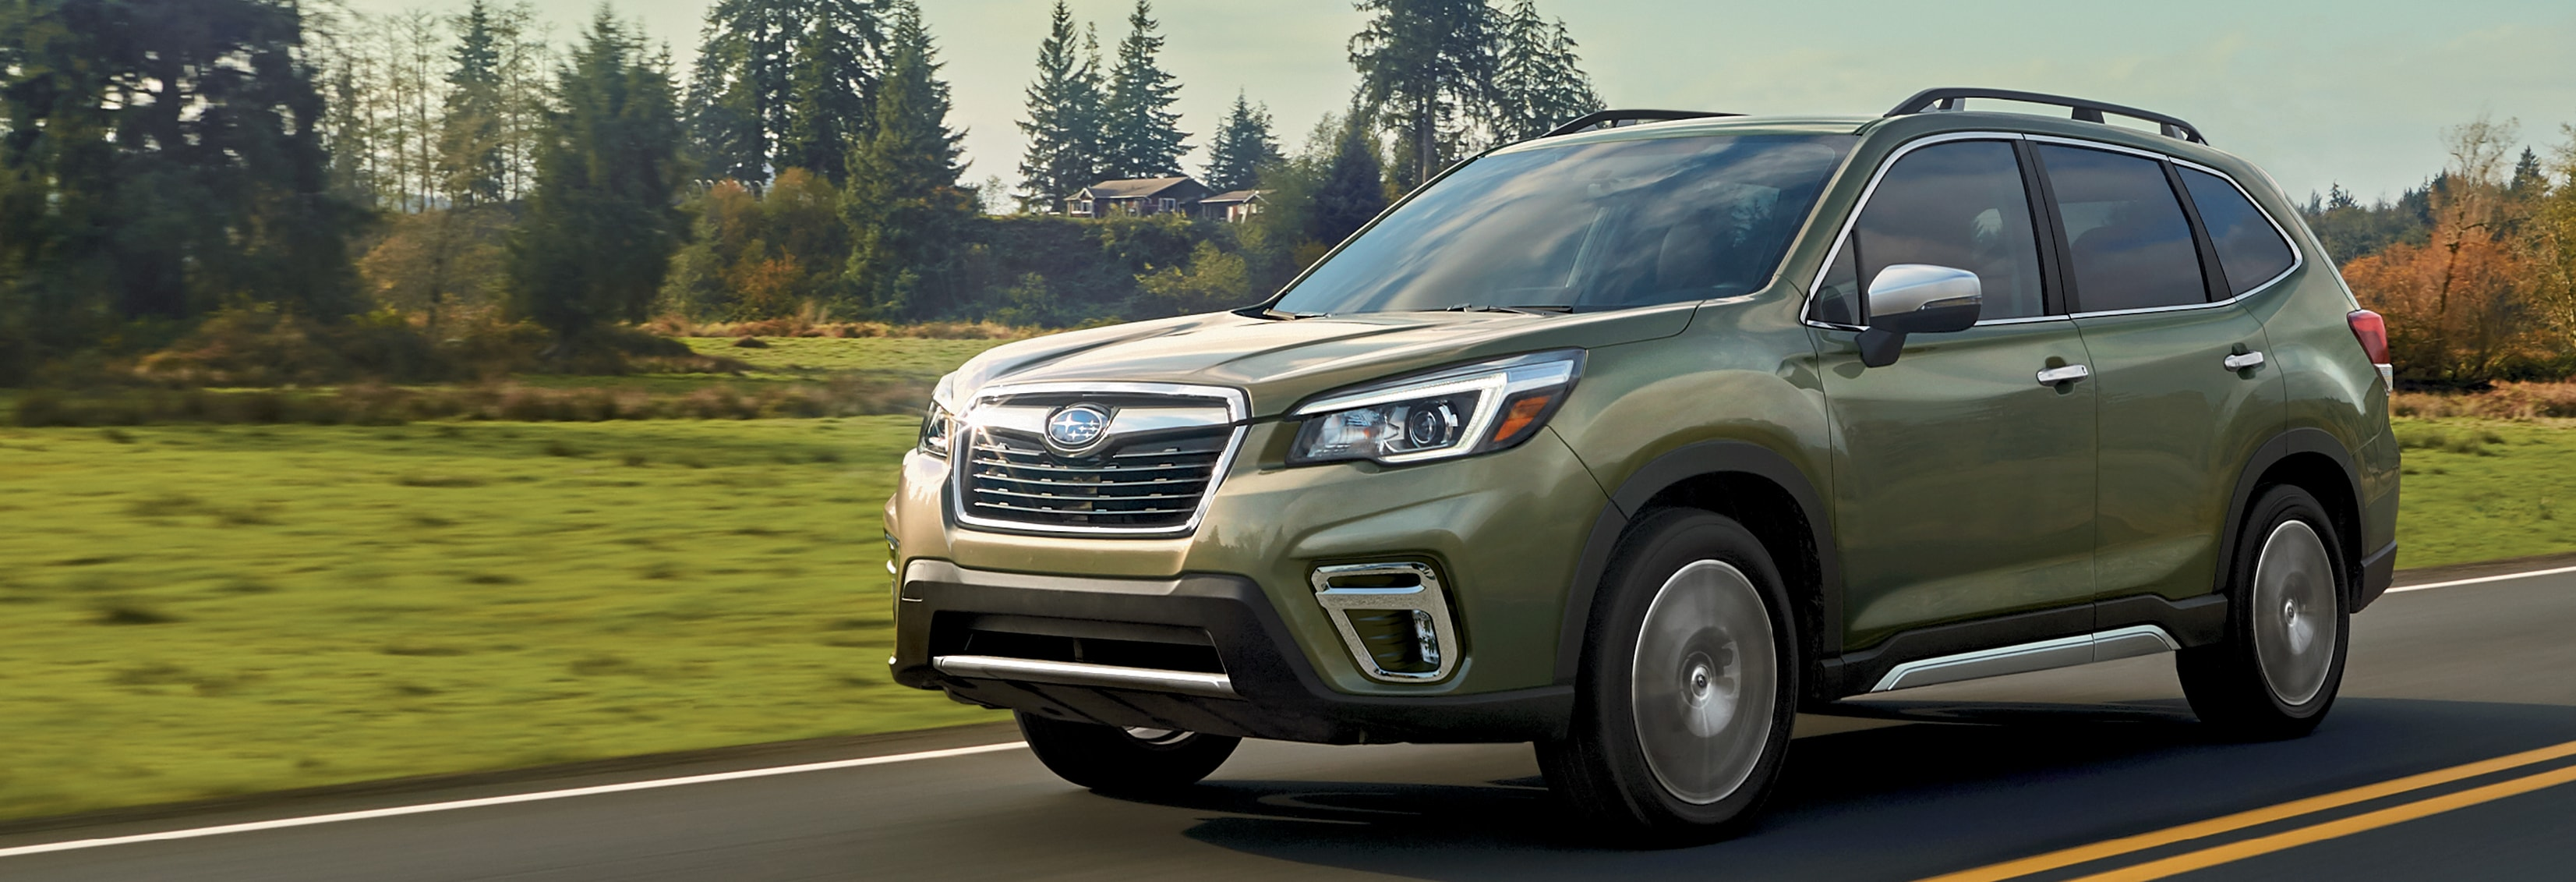 2019 Subaru Forester  Exterior Features